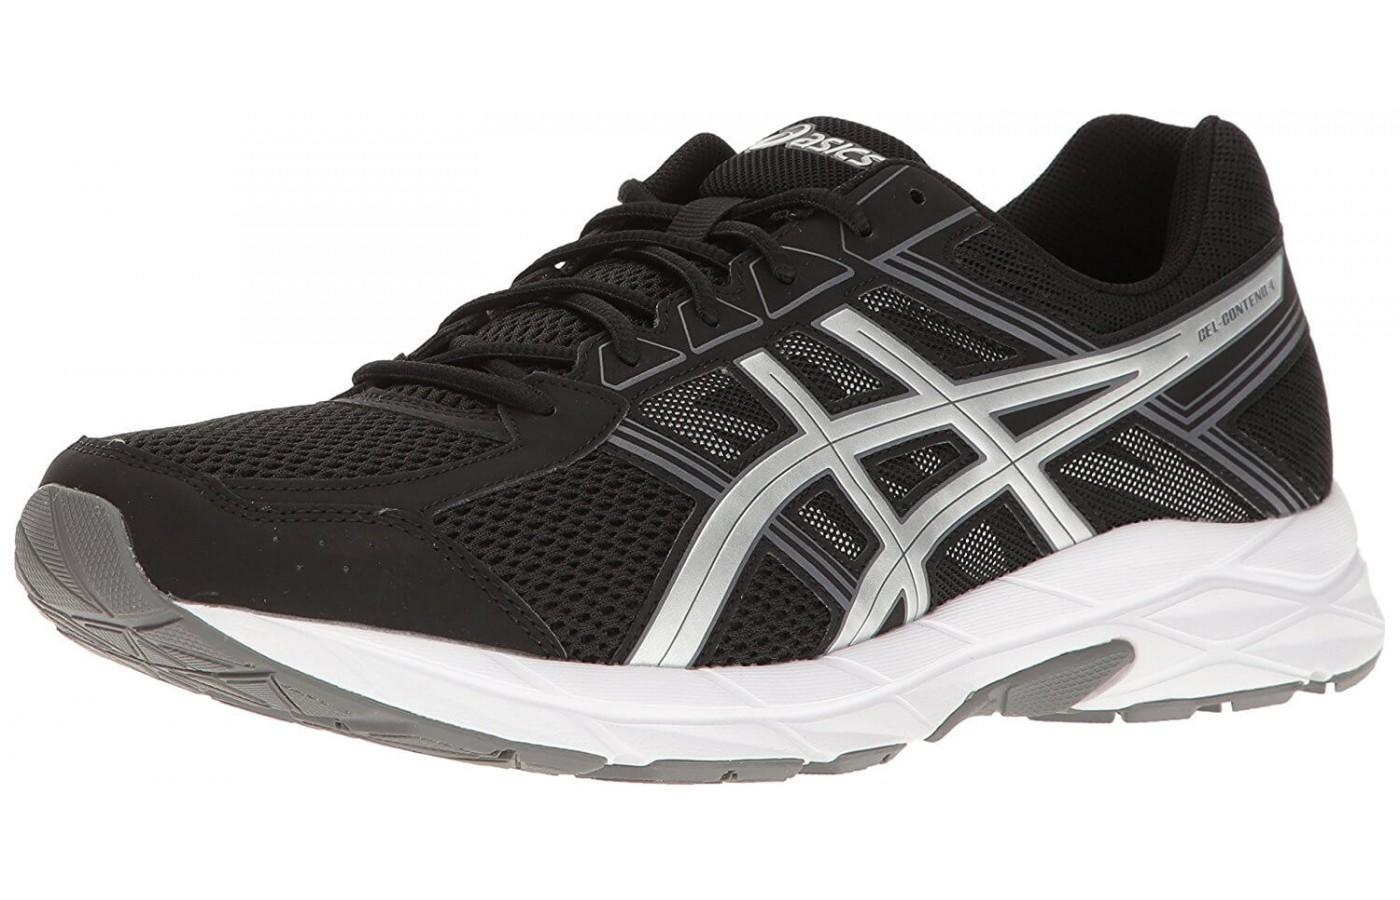 asics shoes types names of upholstery materials and tools 647615